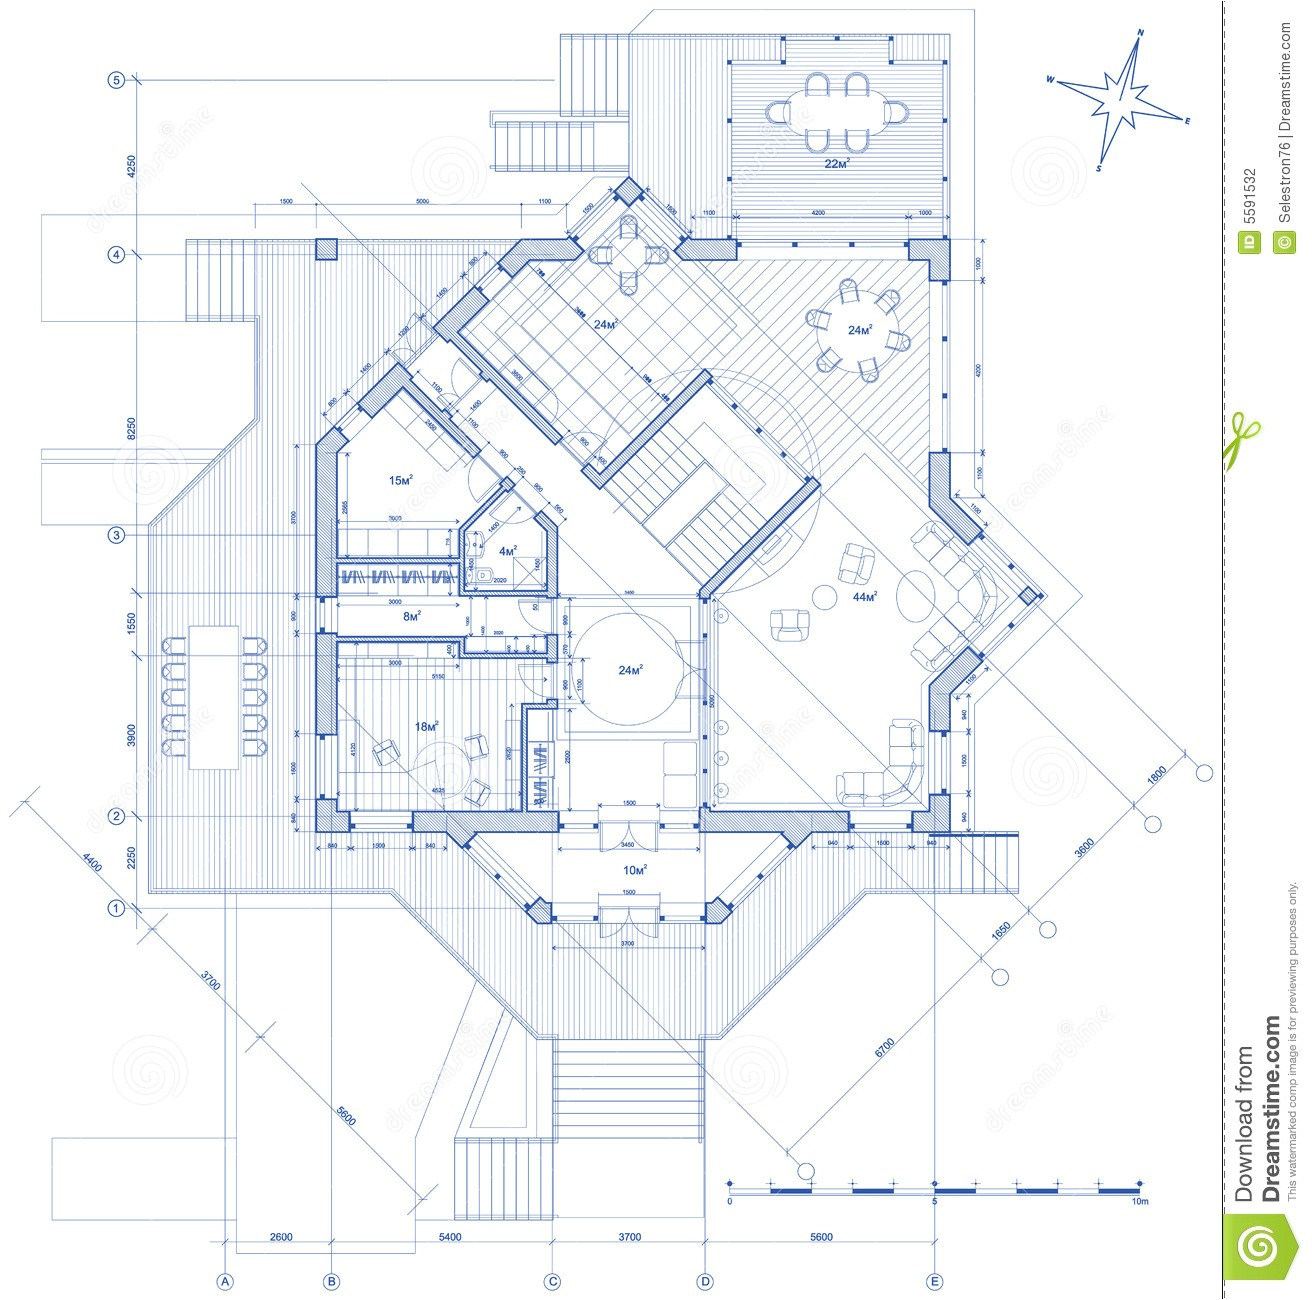 stock photography house architecture plan image5591532